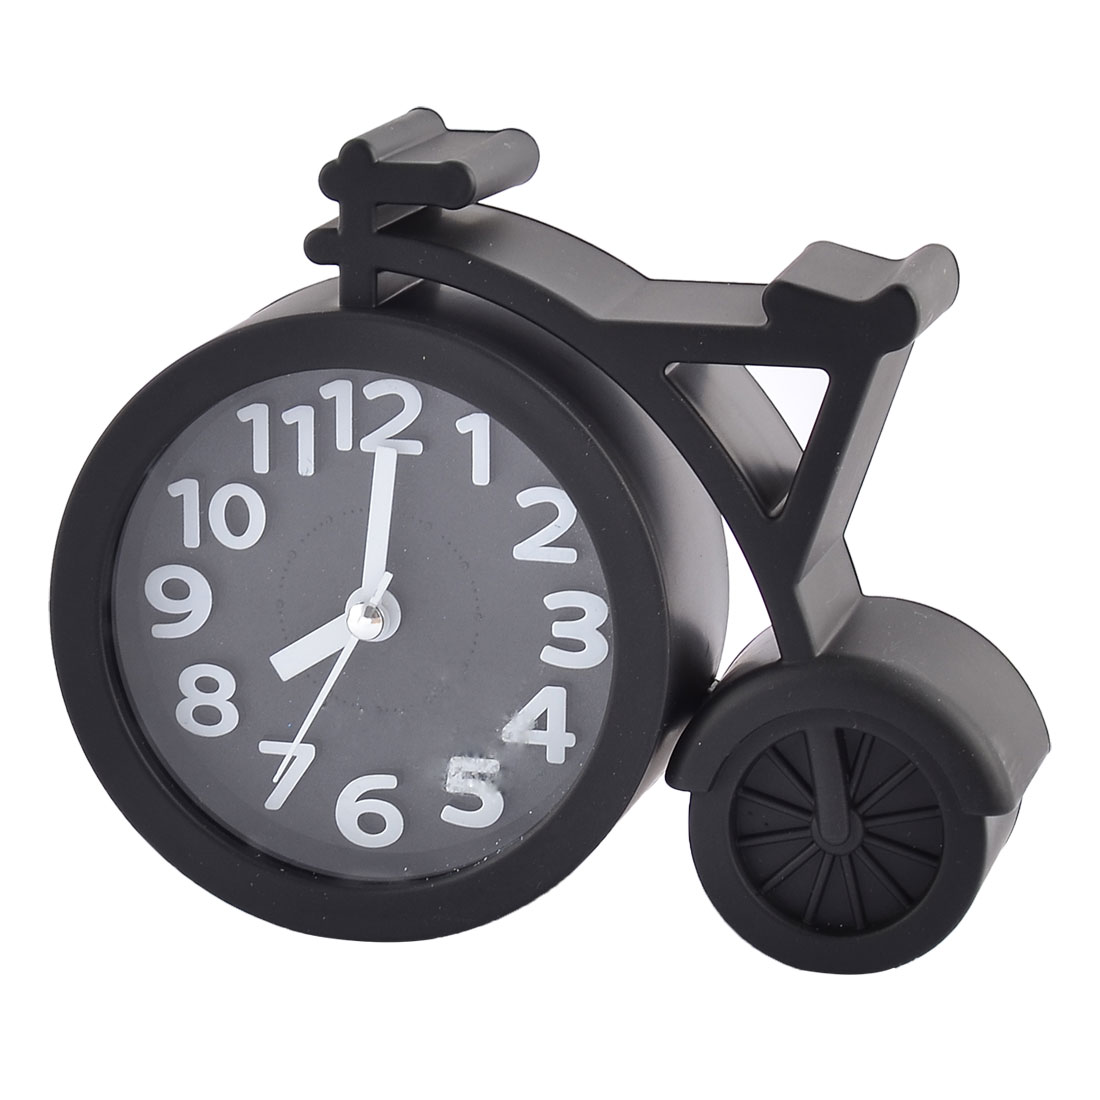 Household Office Desktop Plastic Bike Shaped Silent Battery Powered Arabic Number Alarm Clock Black